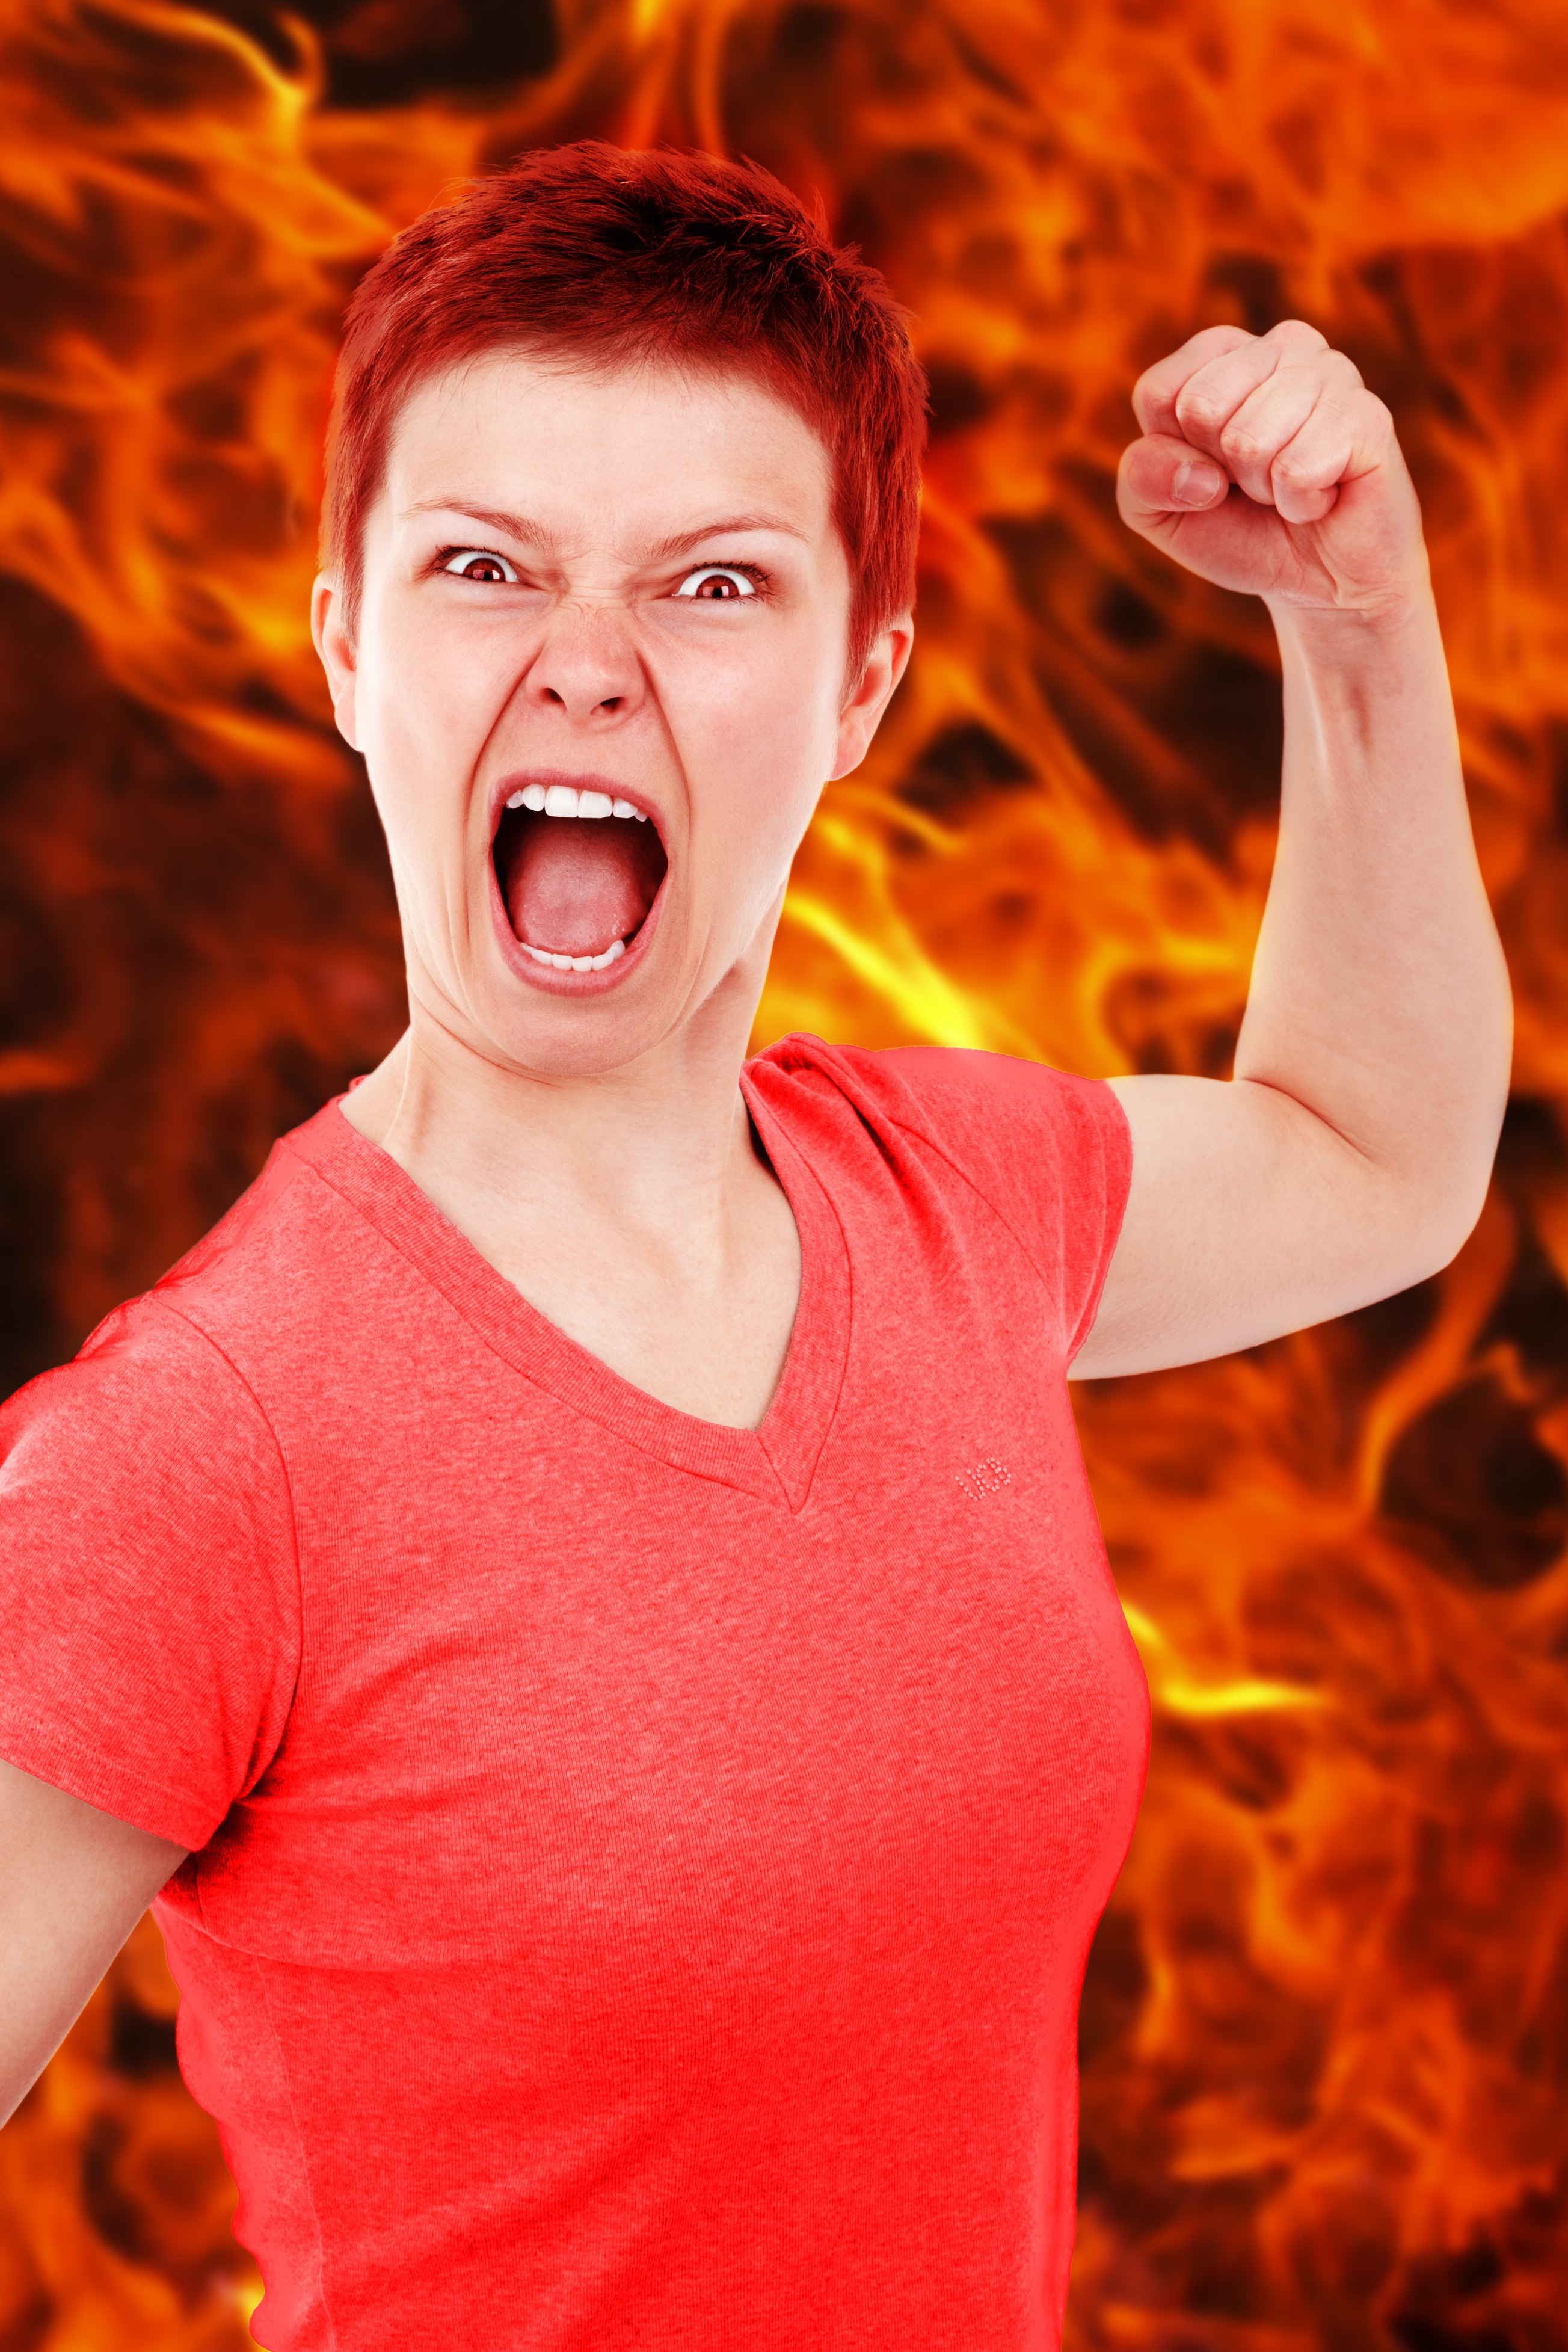 What Is The Difference Between Anger And Rage